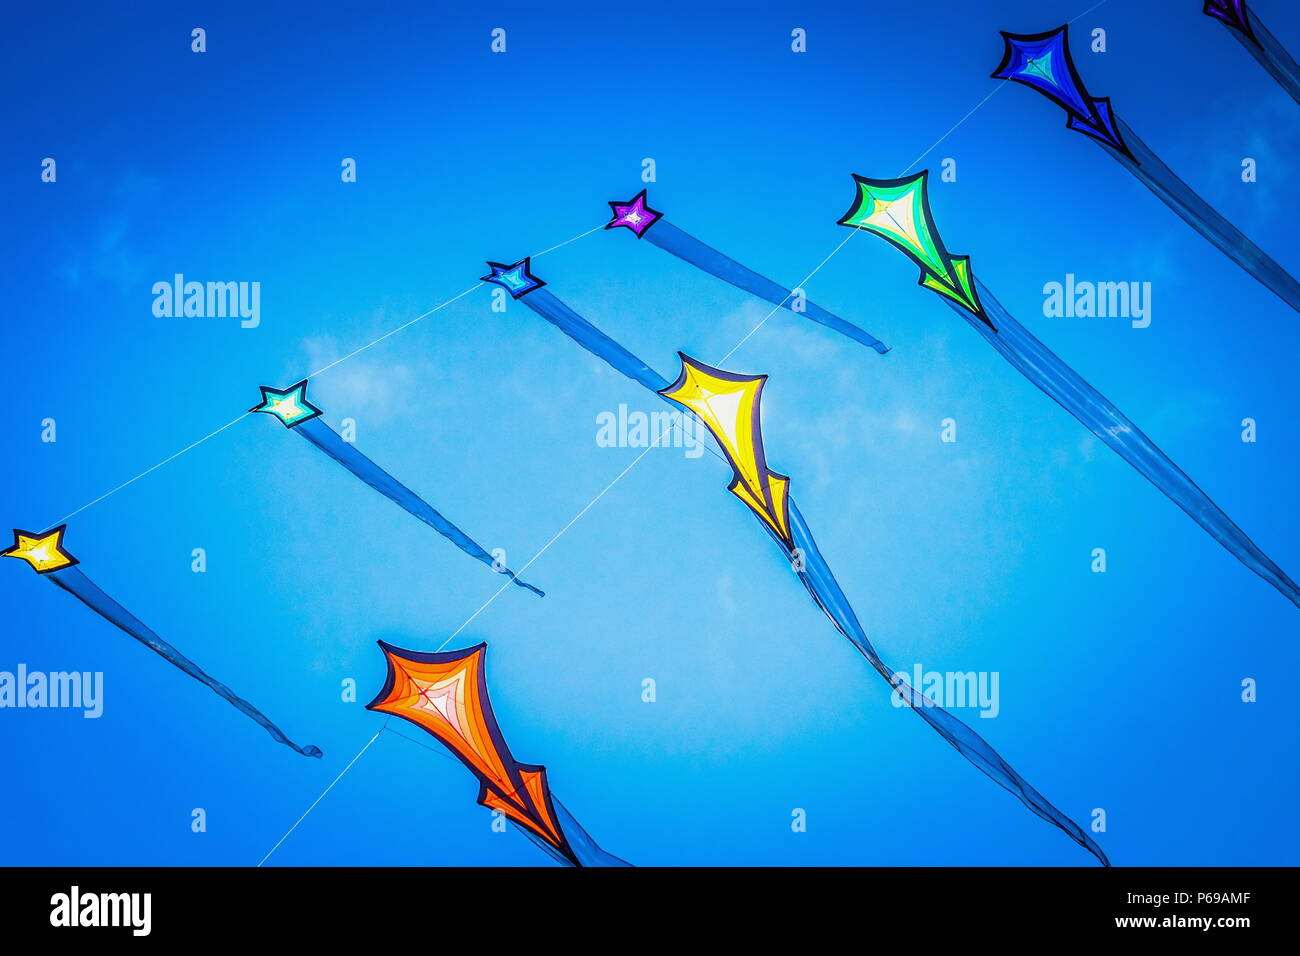 Close up image of brightly colored flying kites against a summer blue sky - Stock Image